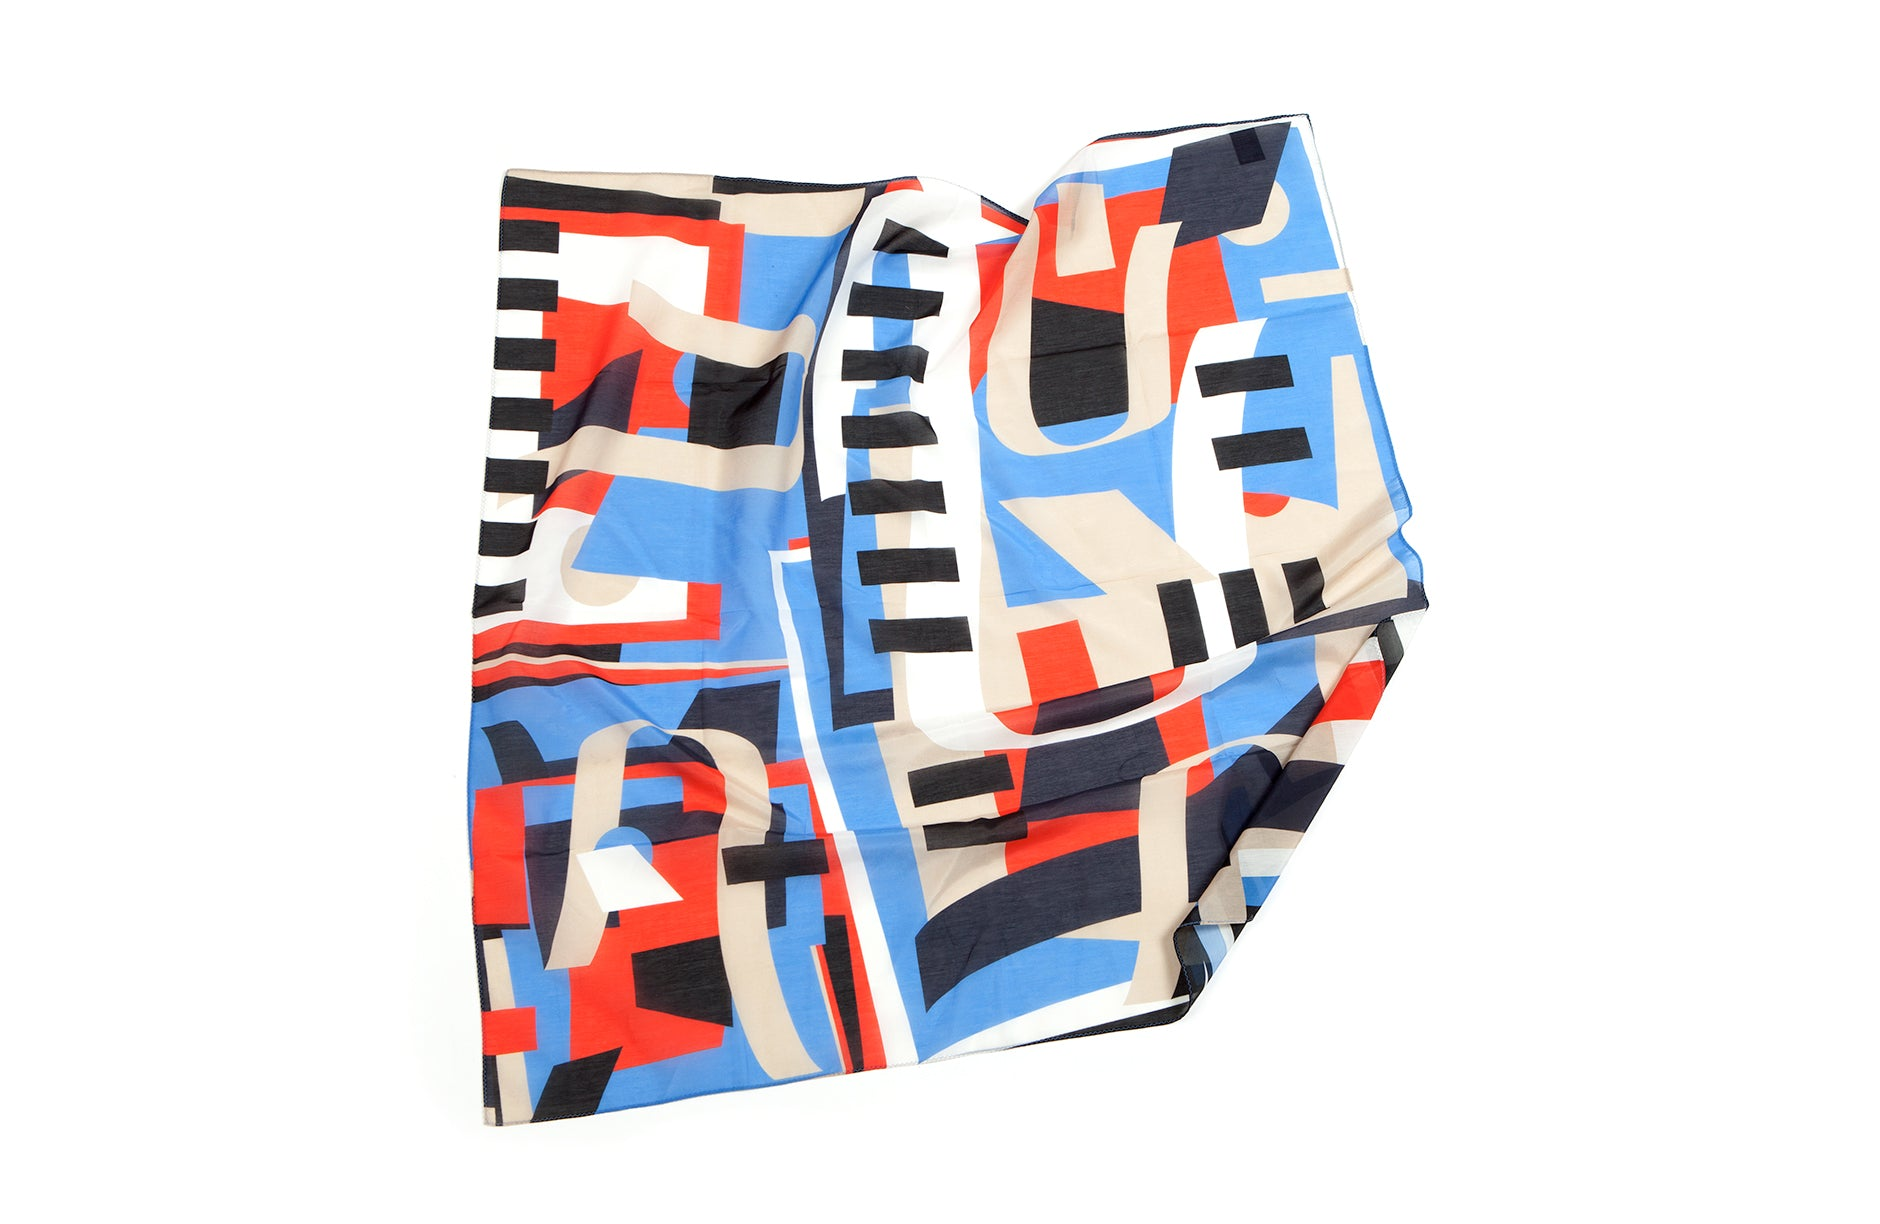 Random Medium Scarf, 65x65 cm, Cotton-Silk Blends